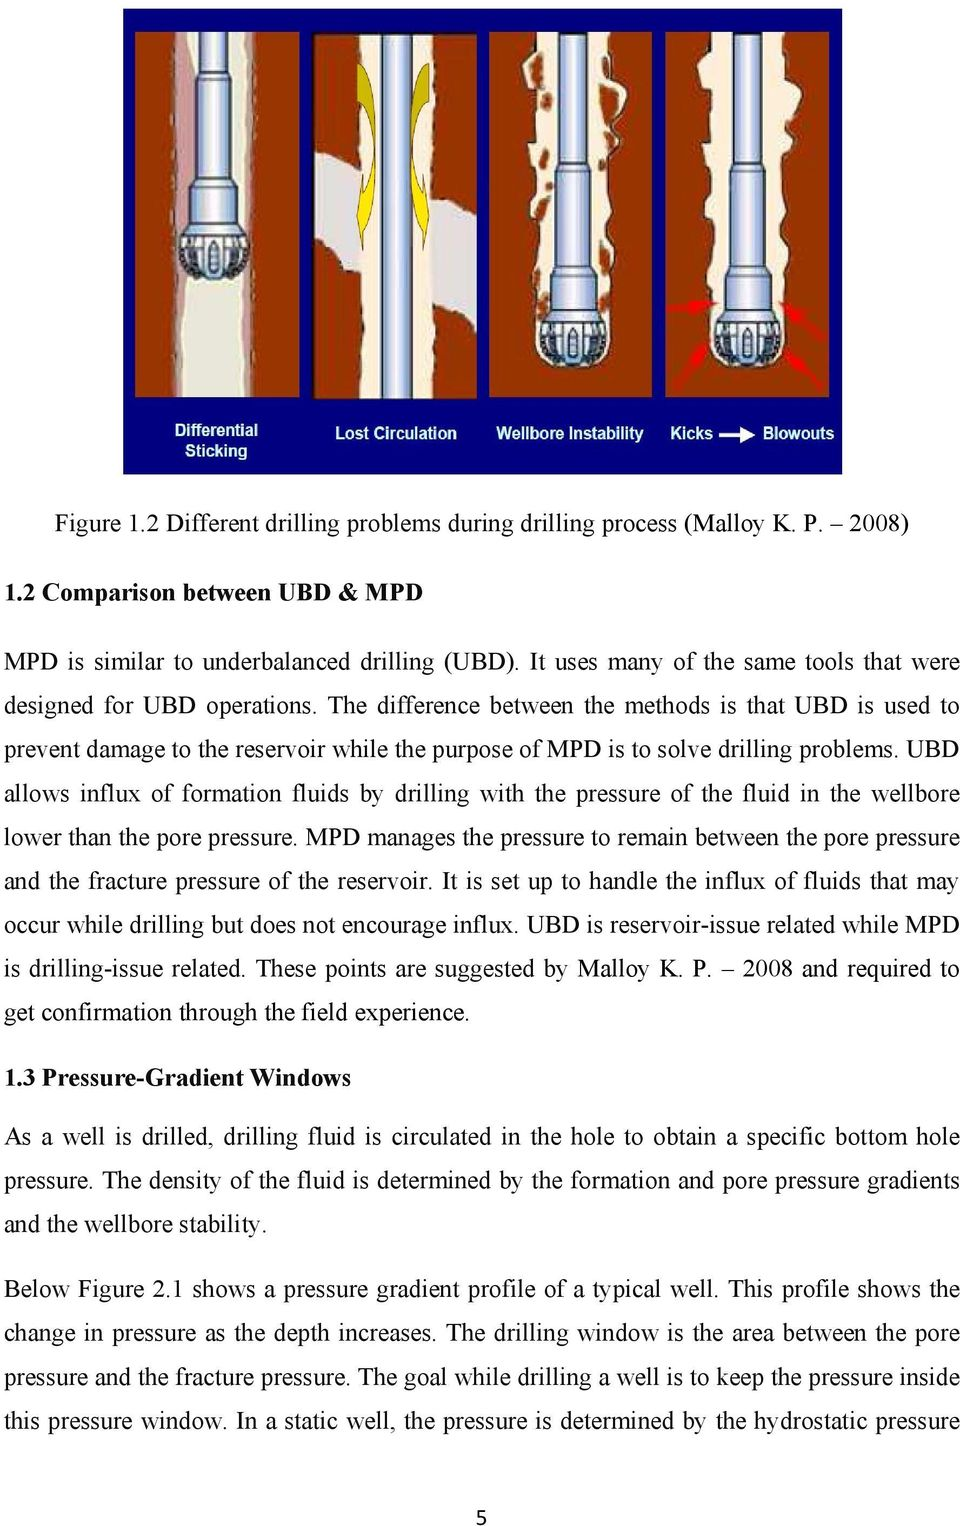 The difference between the methods is that UBD is used to prevent damage to the reservoir while the purpose of MPD is to solve drilling problems.